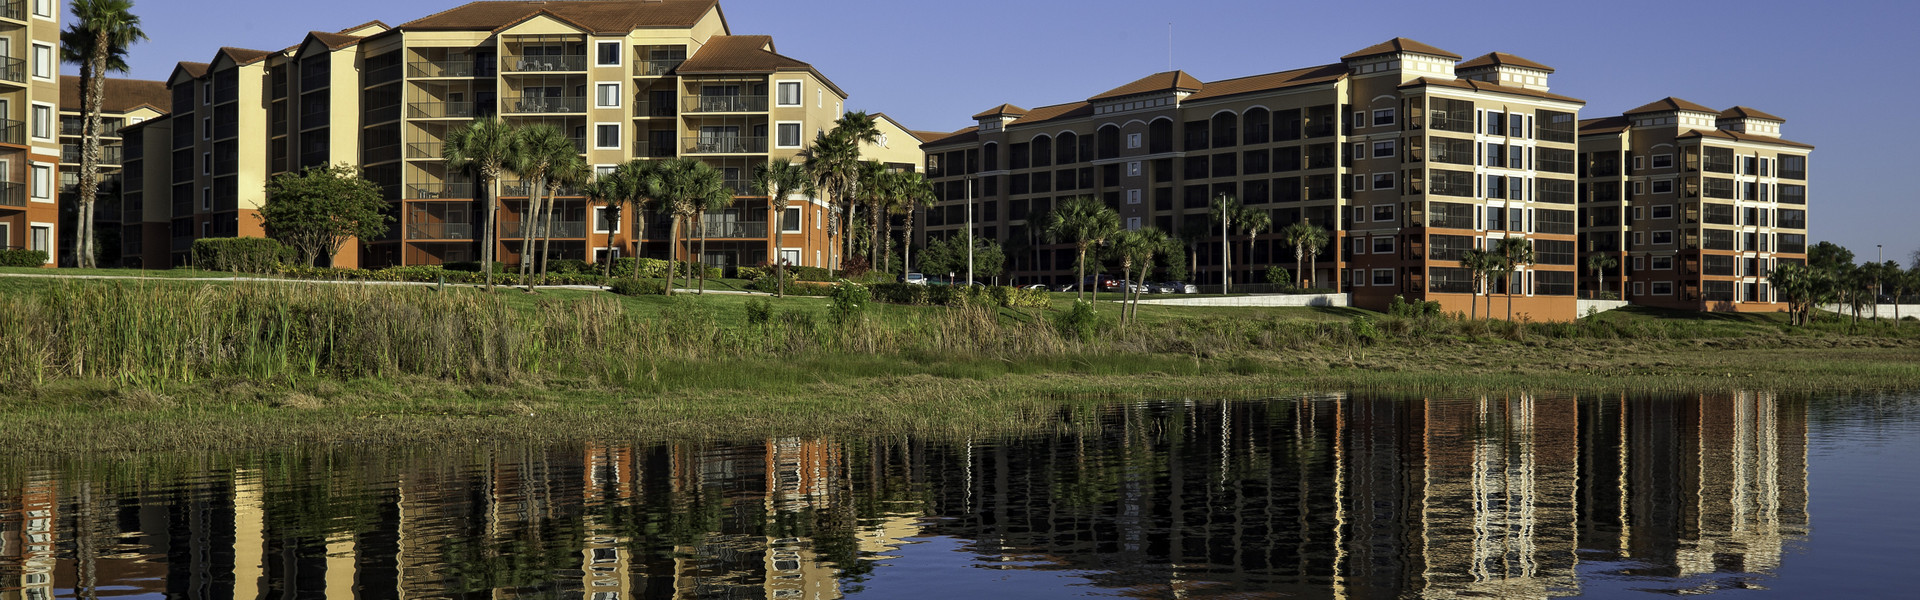 Hotel near Orlando, FL 32819 | Florida Resort